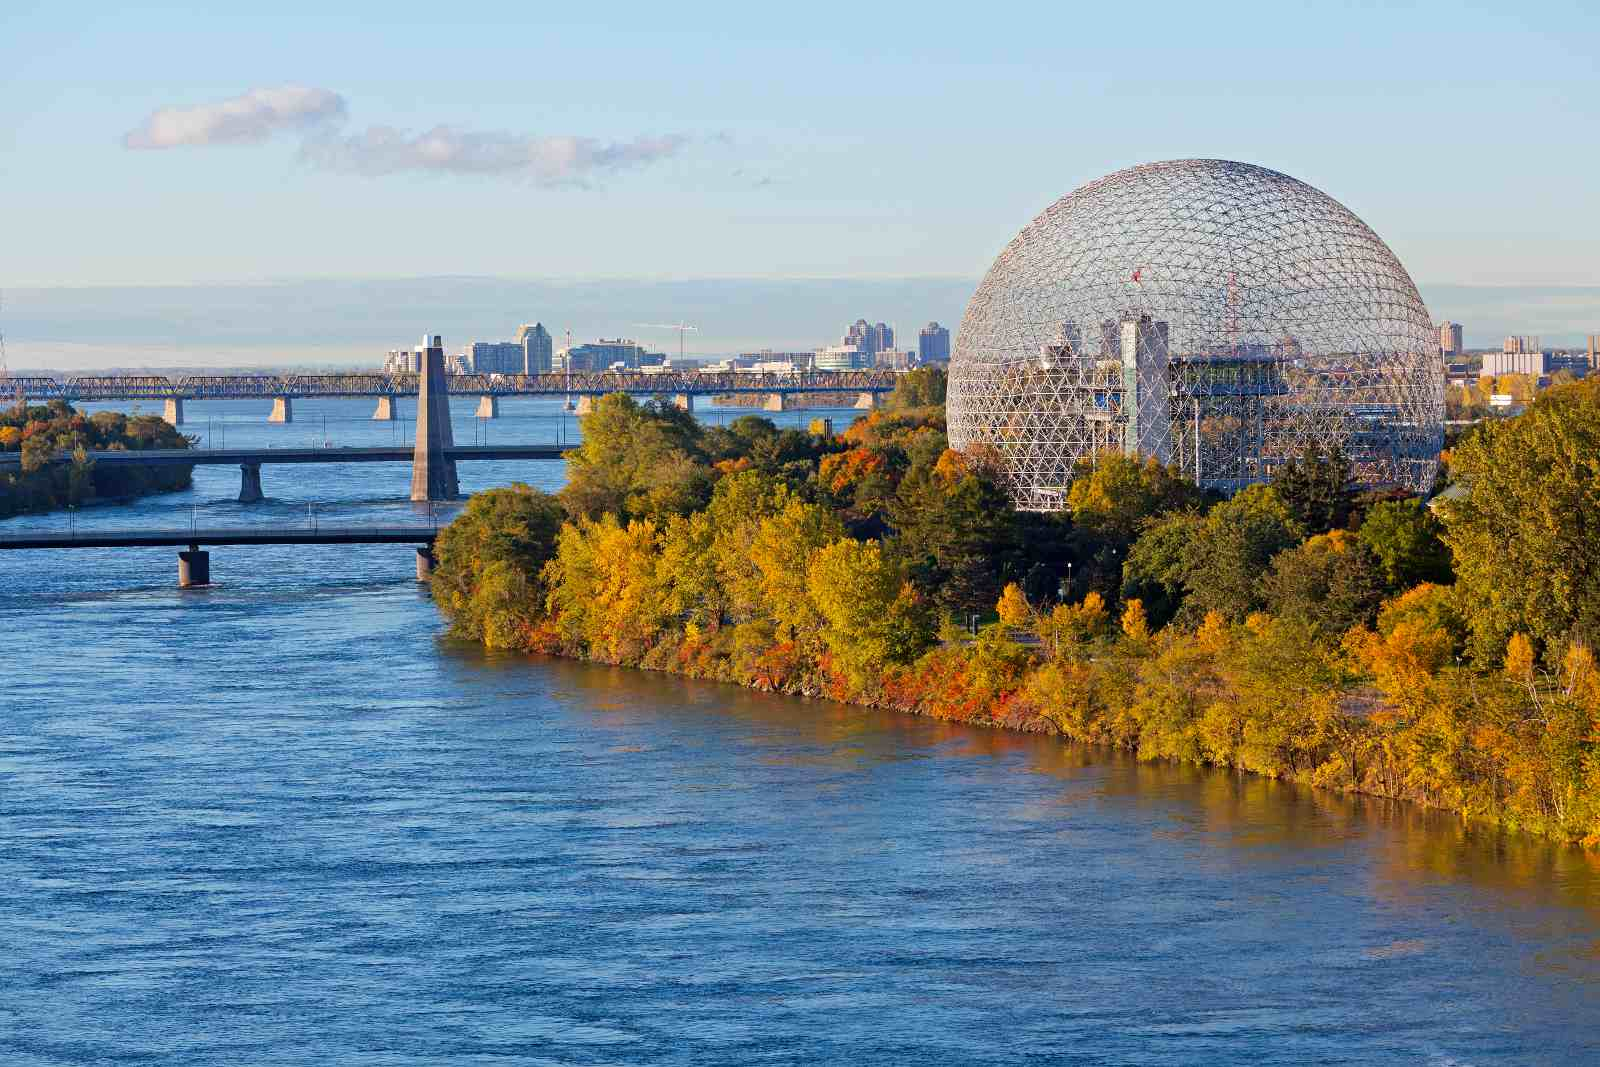 Fall colors at Parc Jean-Drapeau in Montreal